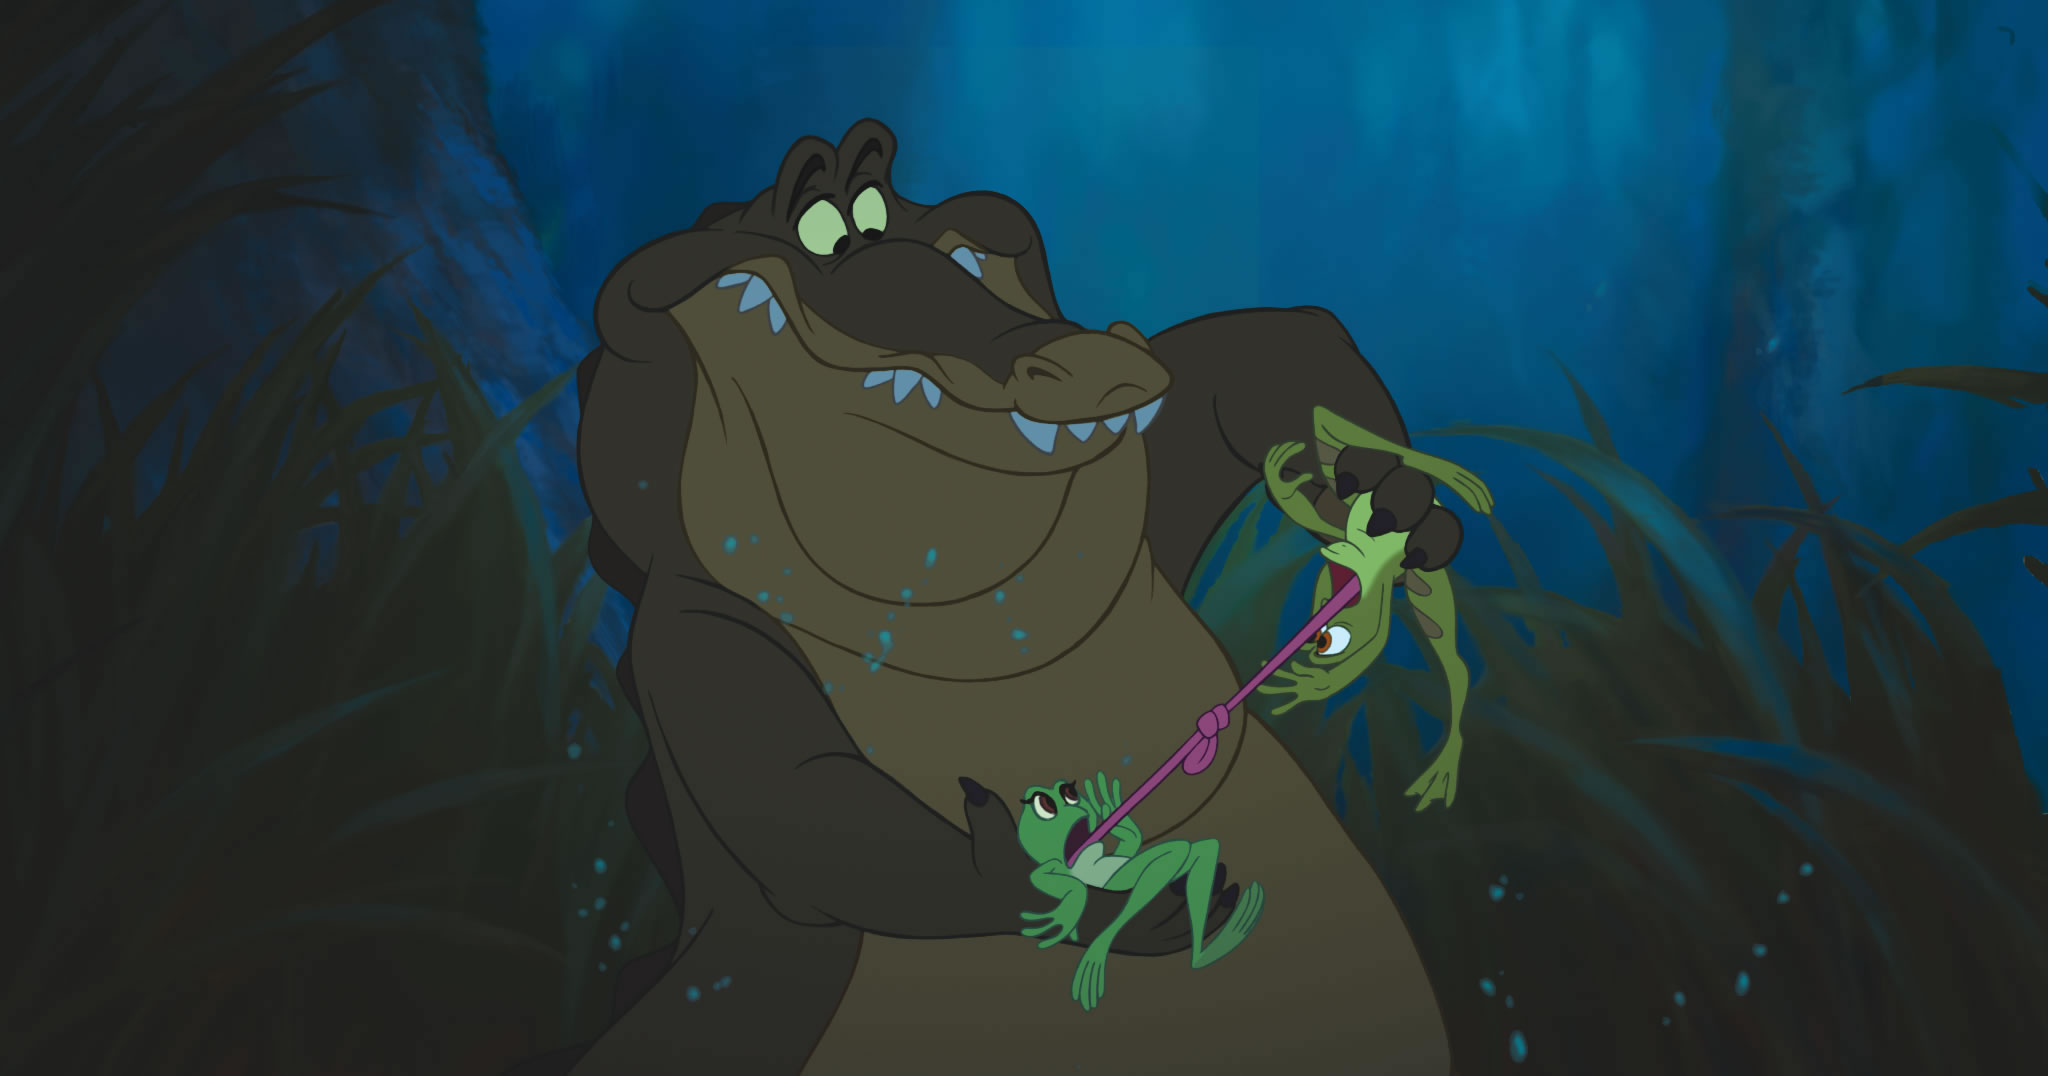 Princess and the frog louis - photo#19